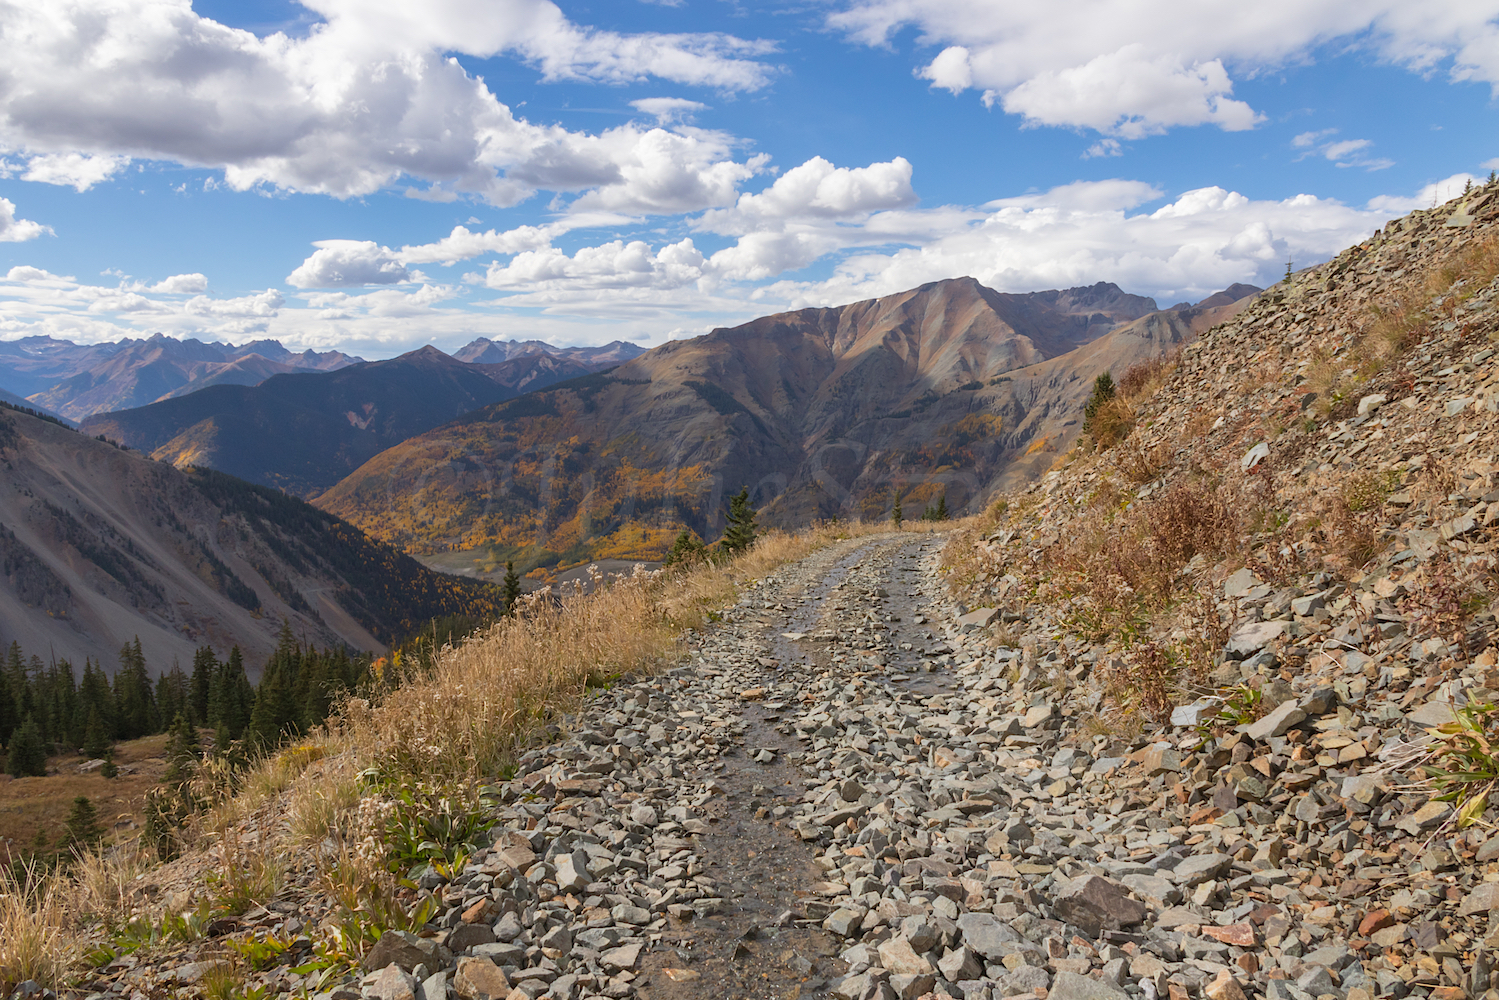 Road to Little Giant Basin, Image # 8883